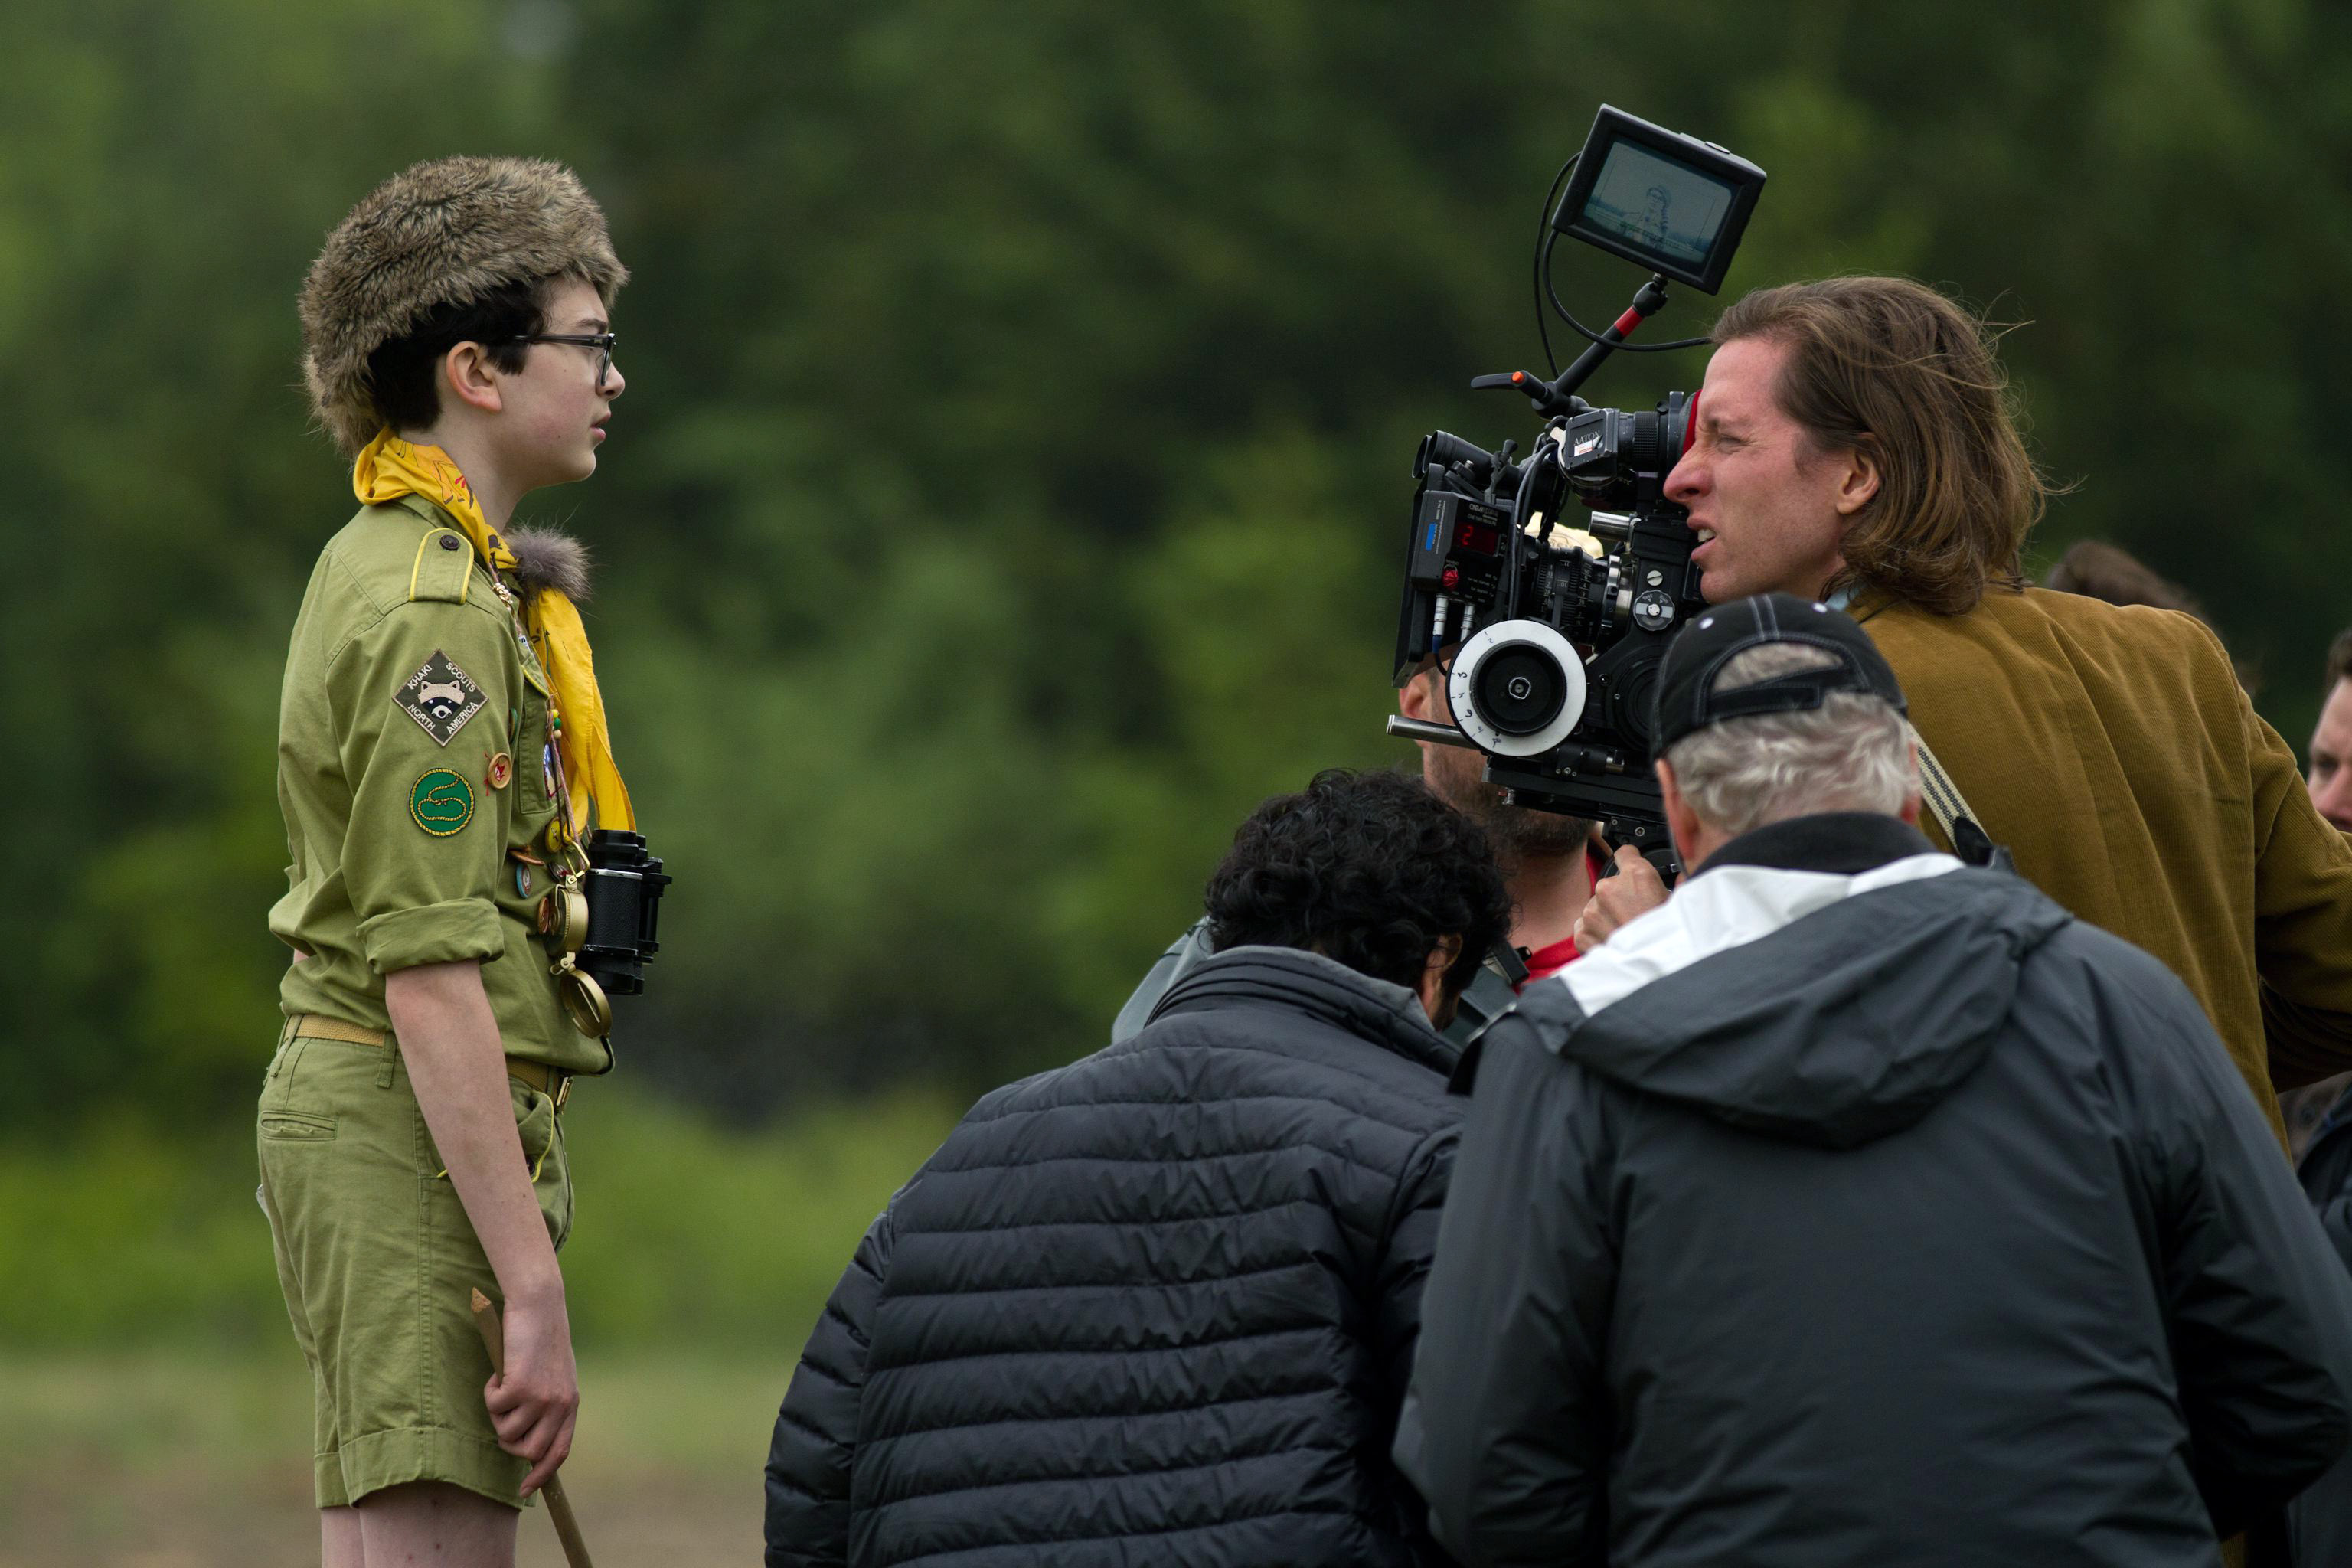 Wes Anderson Alludes To Setting And Influences Of Grand